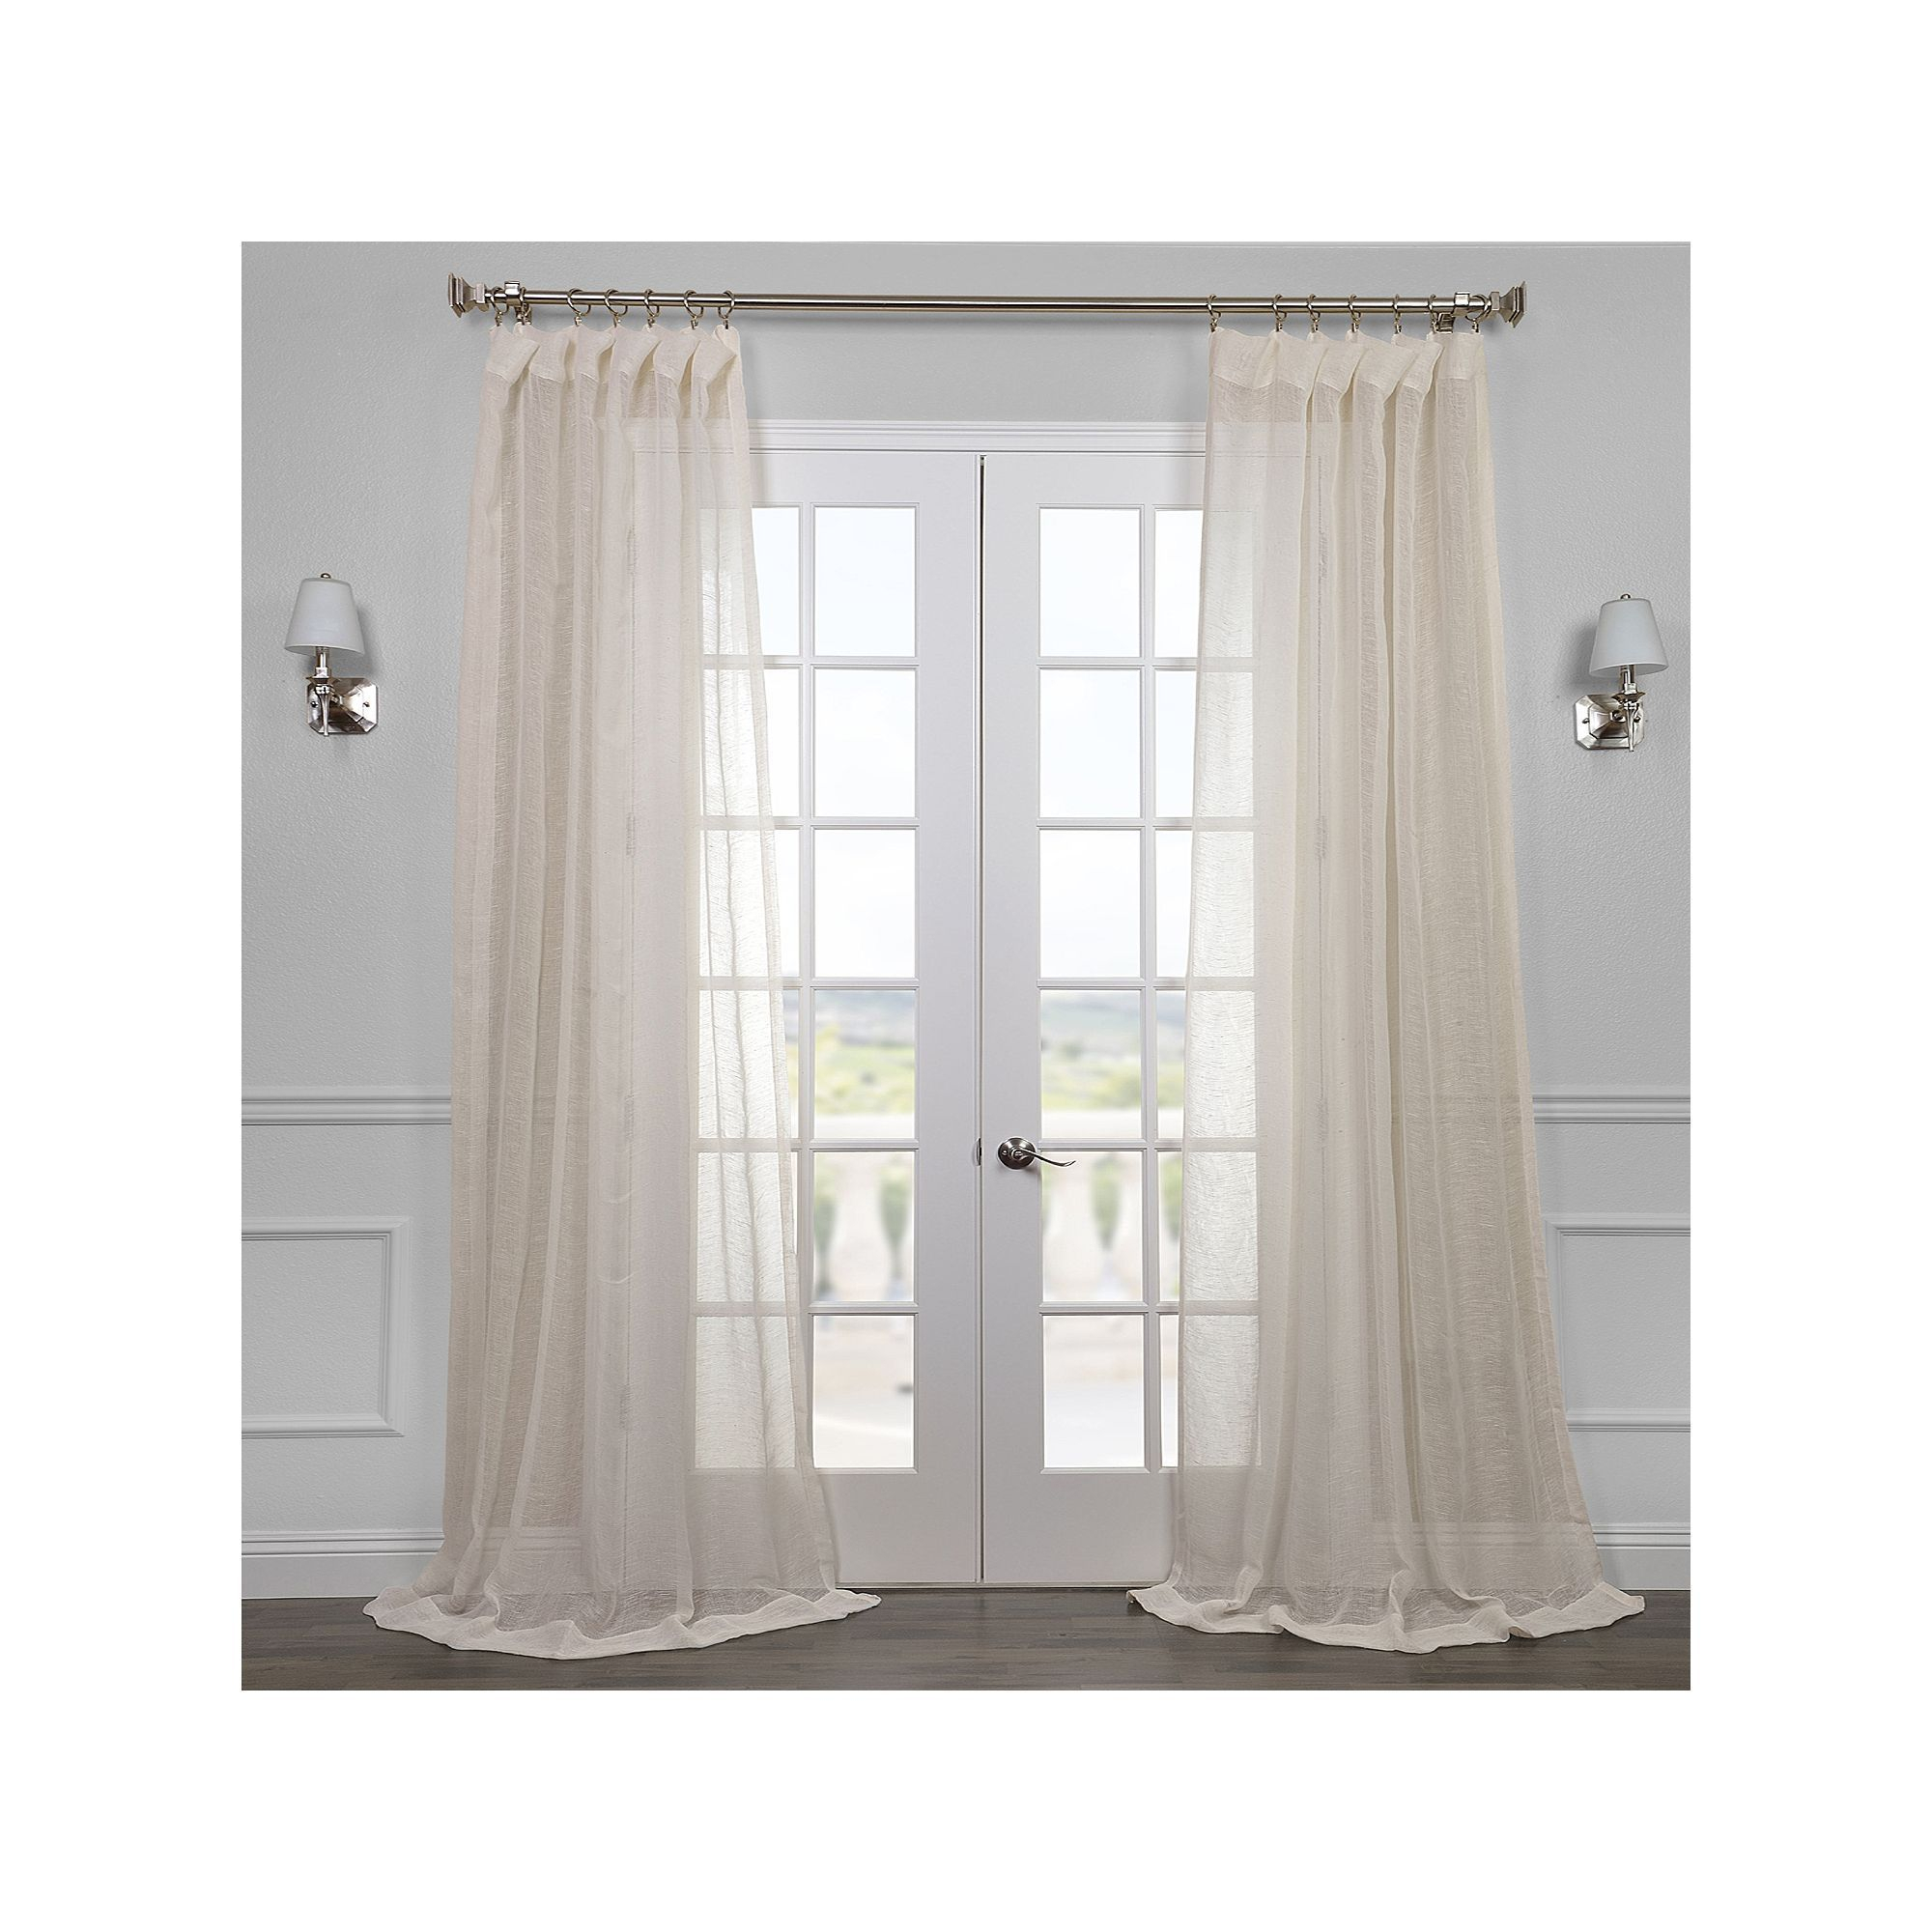 Eff 1 Panel Solid Open Weave Sheer Window Curtain, White For Signature White Double Layer Sheer Curtain Panels (View 23 of 30)